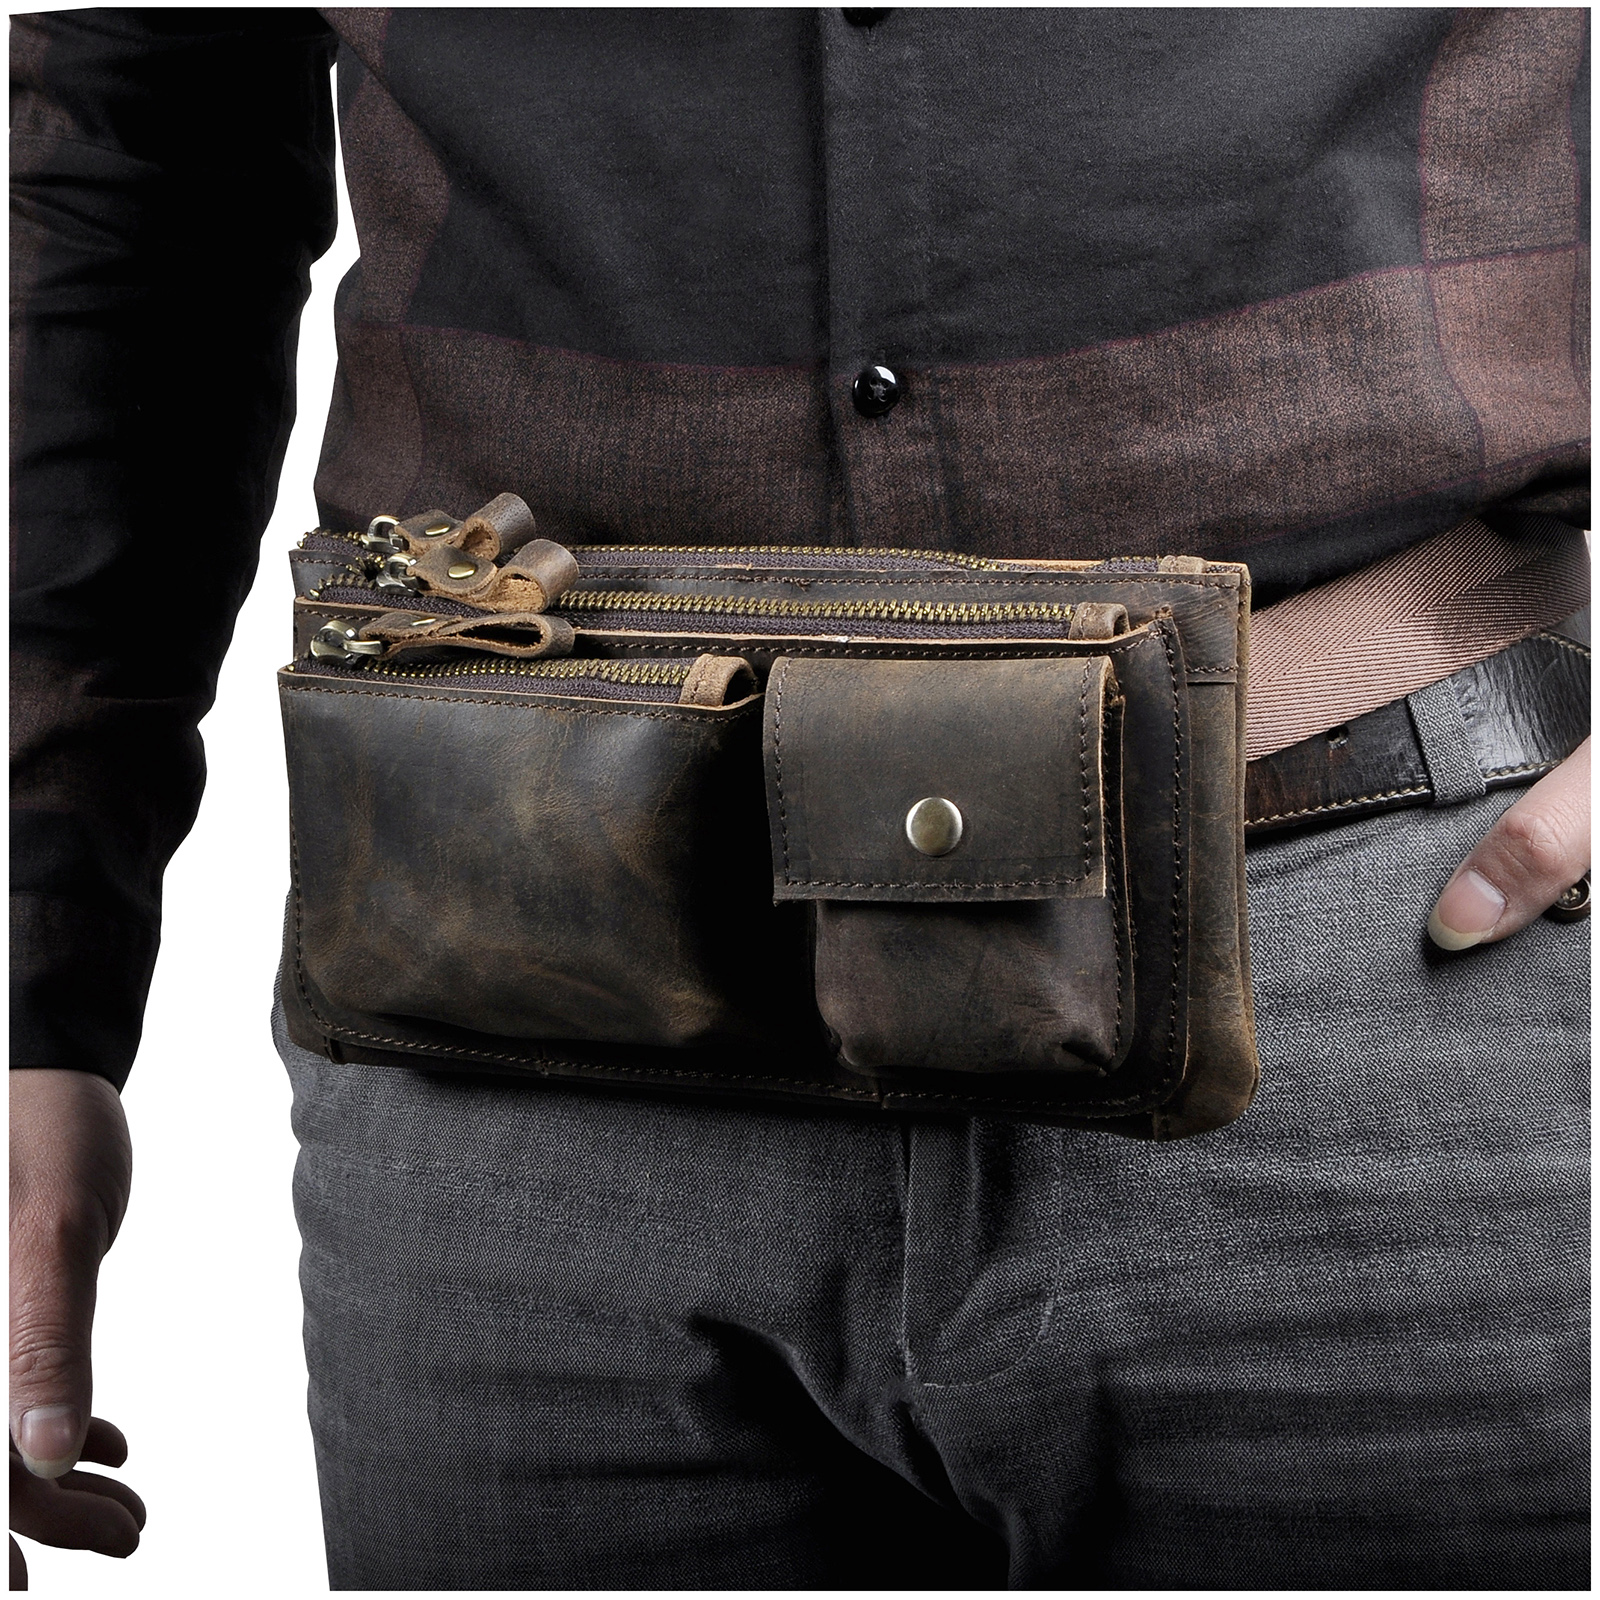 Fashion Original Leather Unisex Crossbody Sling Bag Design Casual Travel Cigarette Case Pouch Fanny Waist Belt Bag Pack 811-29-d